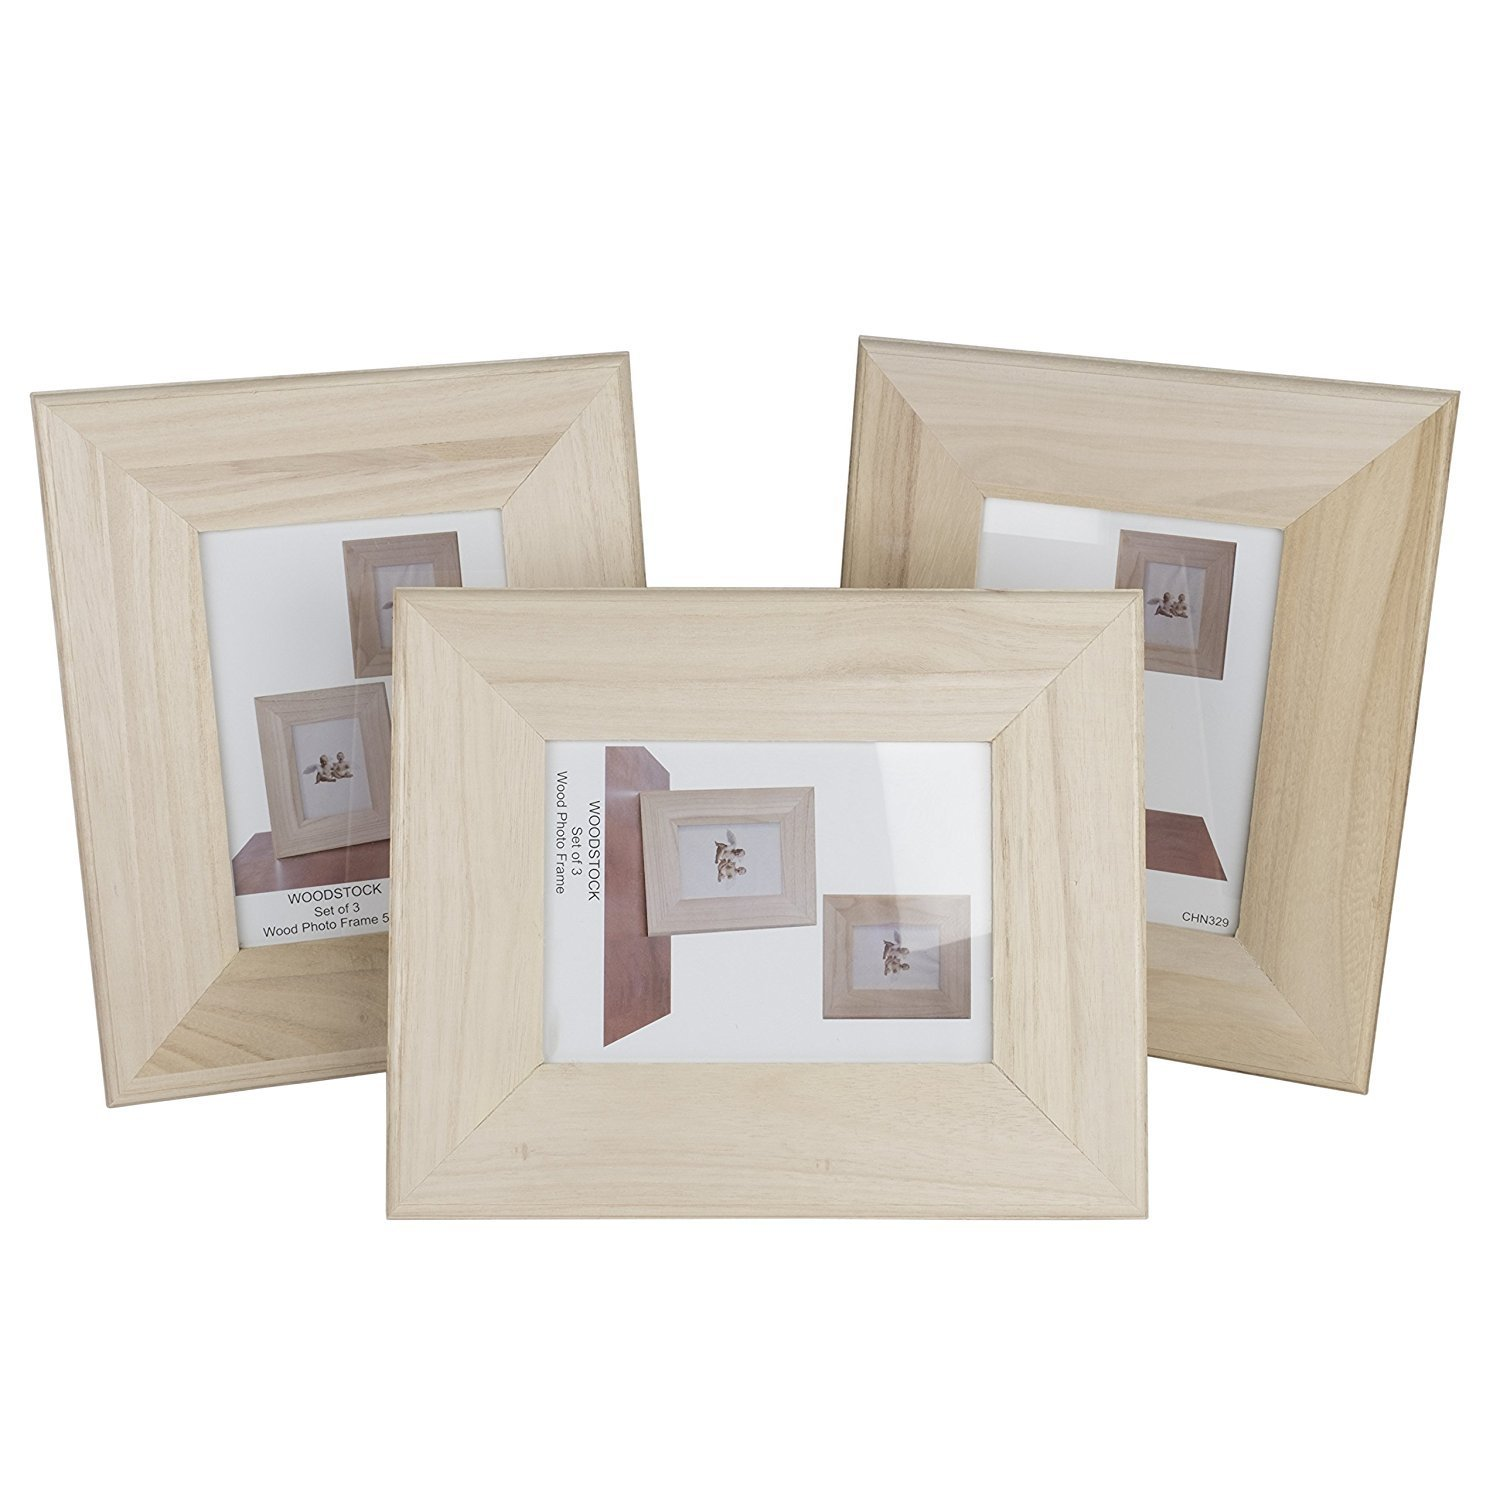 Unfinished Solid Wood Photo Picture Frames Ready To Paint for DIY Projects 4 by 6 Inches Set of 3